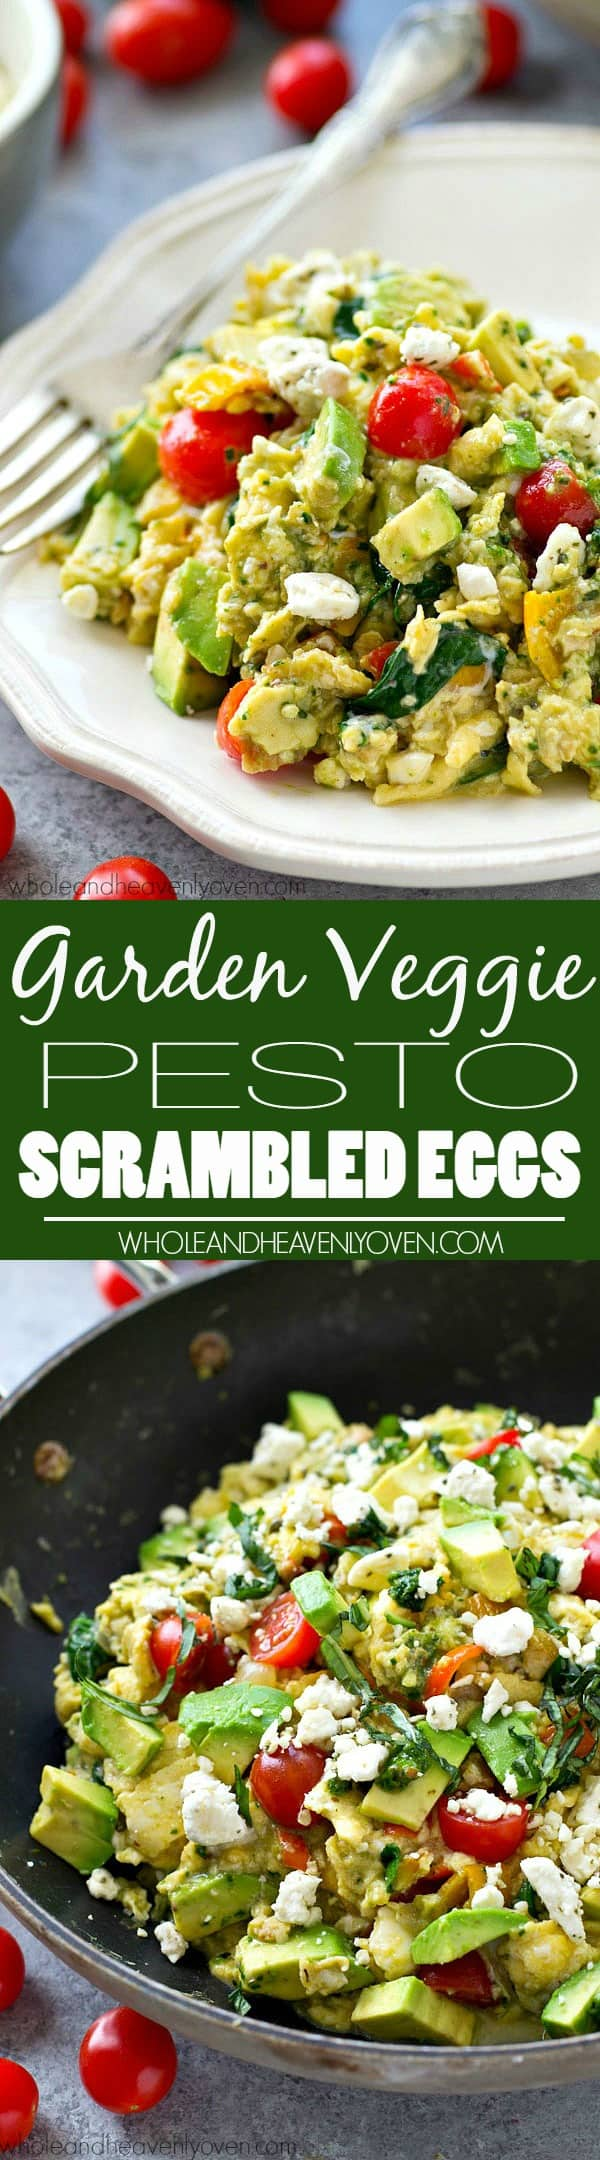 Scrambled eggs get a BIG boost in the flavor department with a rainbow of garden veggies and lots of flavorful pesto!